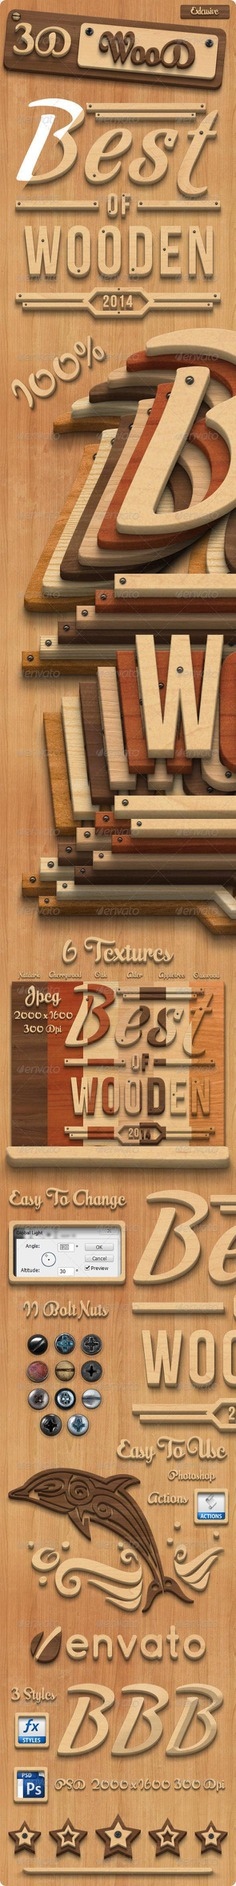 3d Wood Styles for Photoshop